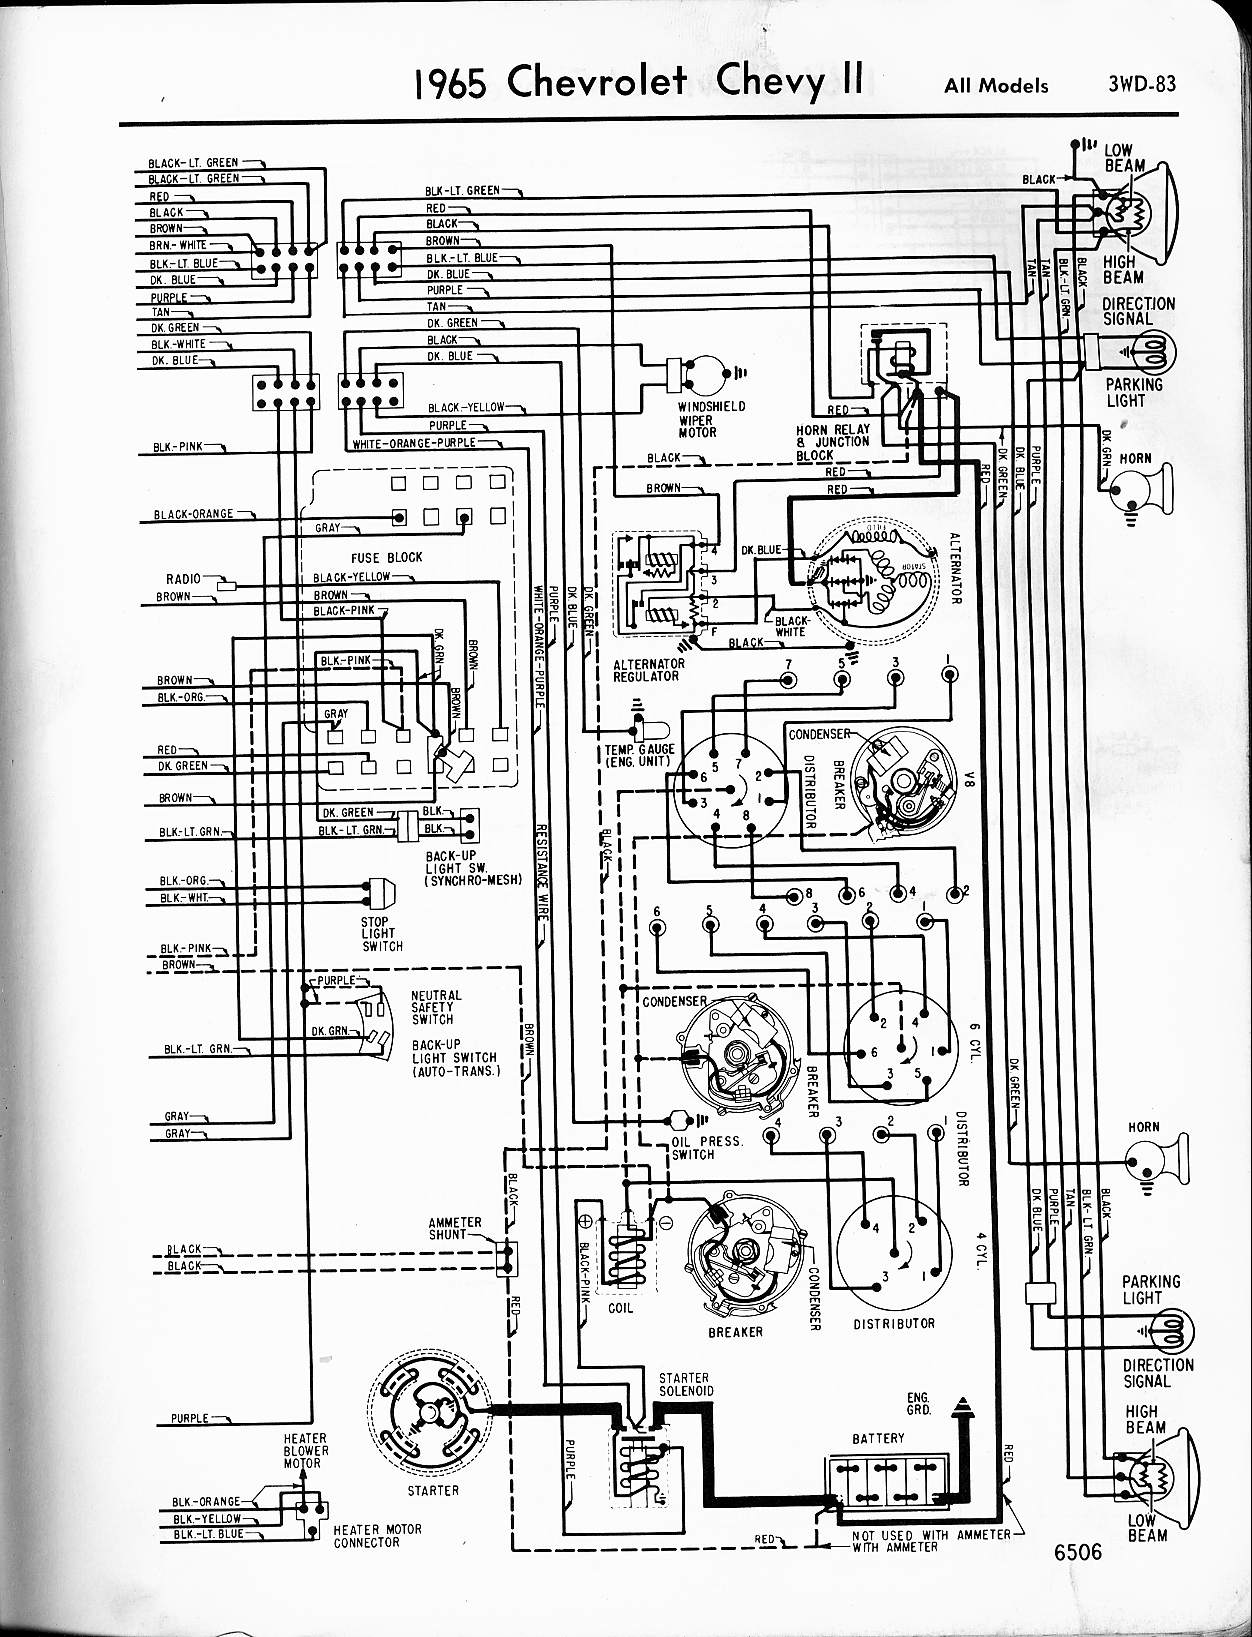 Peachy 1965 Gto Heater Wiring Diagram Diagram Data Schema Wiring 101 Photwellnesstrialsorg